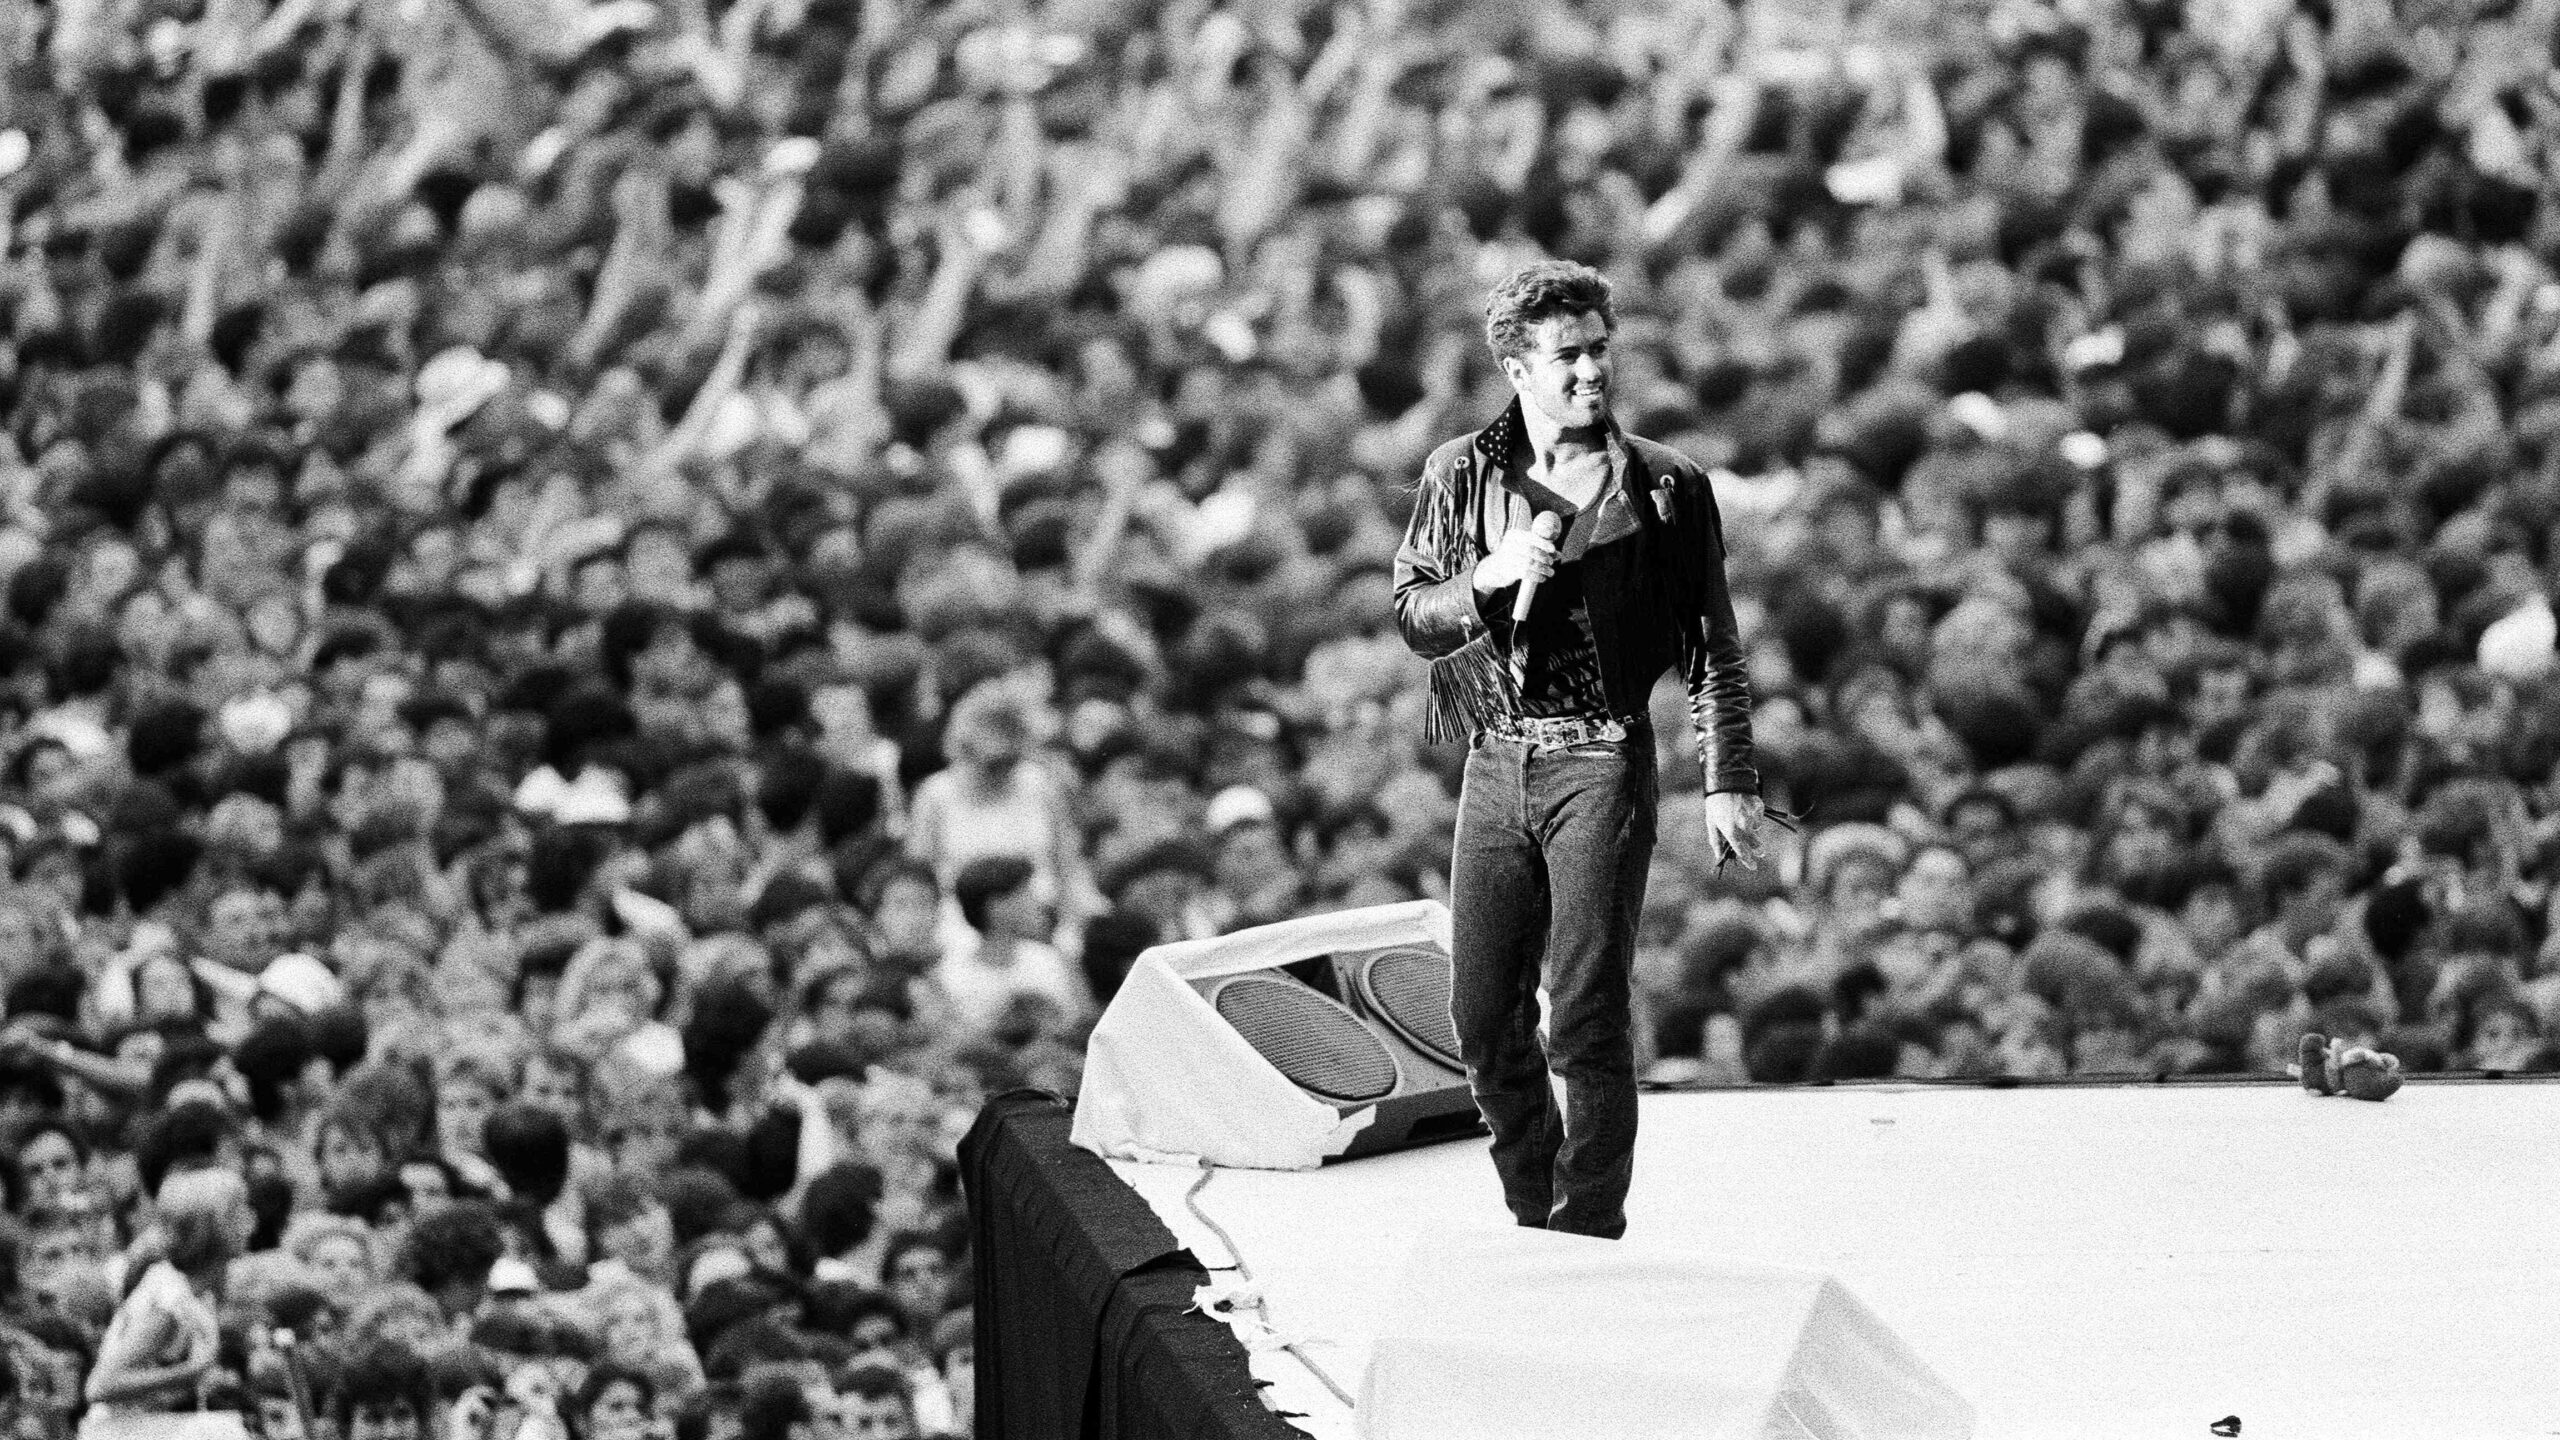 George Michael on stage with crowd behind